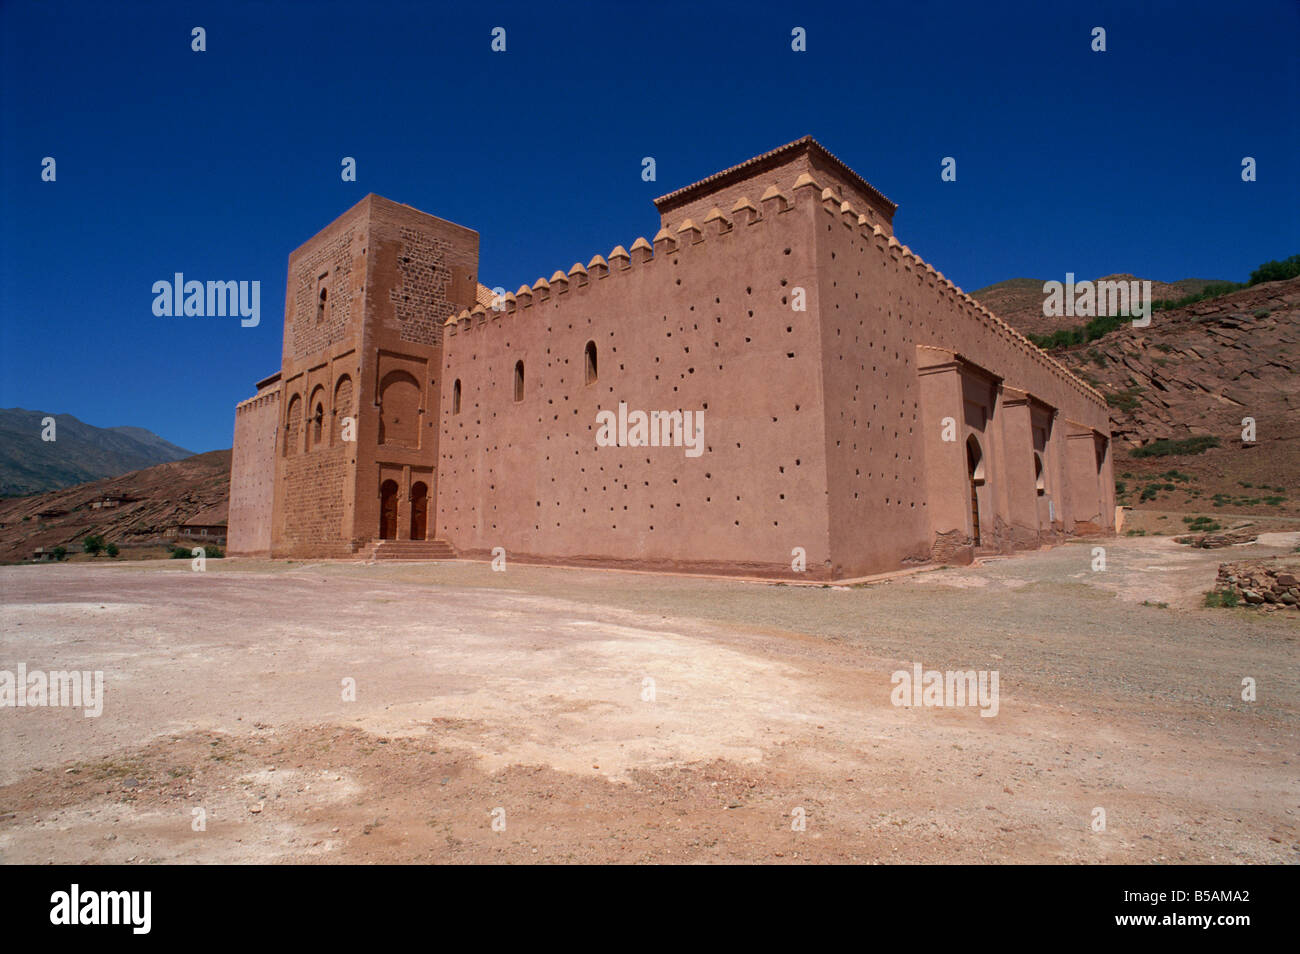 Tin Mall mosque dated from 1153, Tizi-n-Test pass, Morocco, North Africa, Africa - Stock Image